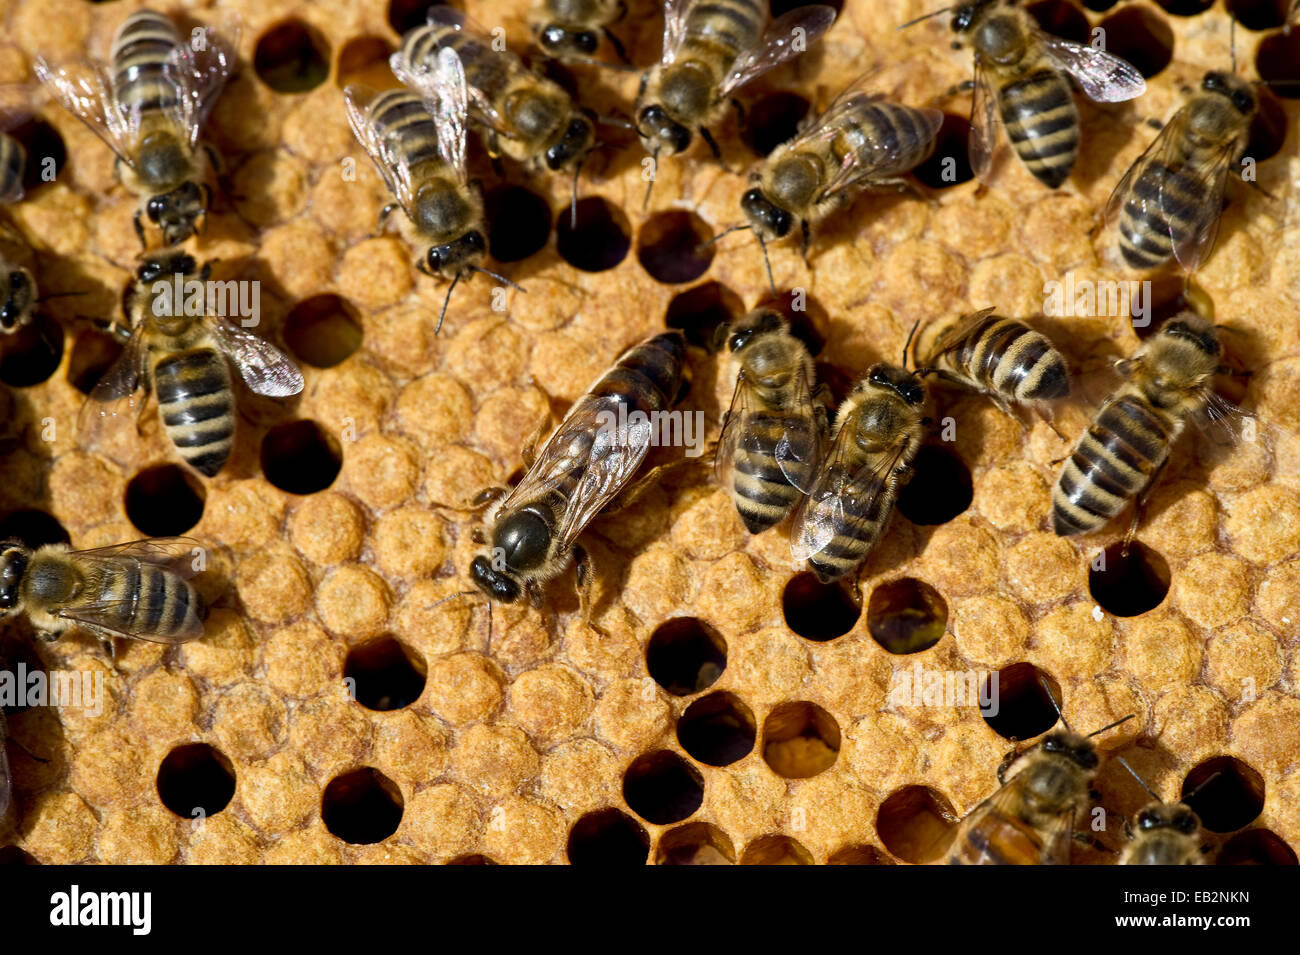 Honey bees (Apis sp.) on a honeycomb, queen bee at centre, Germany - Stock Image